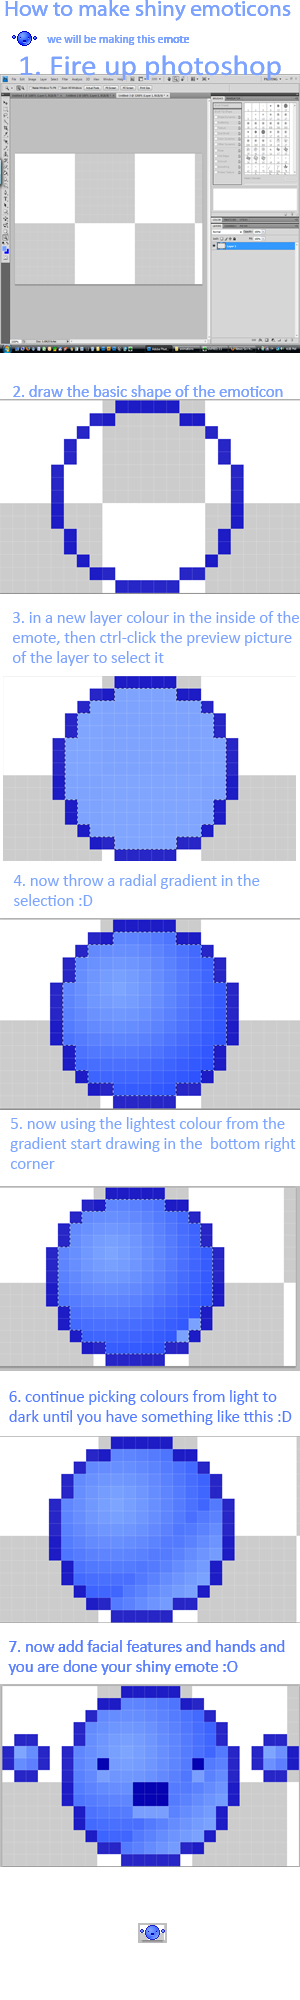 how to make shiny emoticons by NickPlatypus